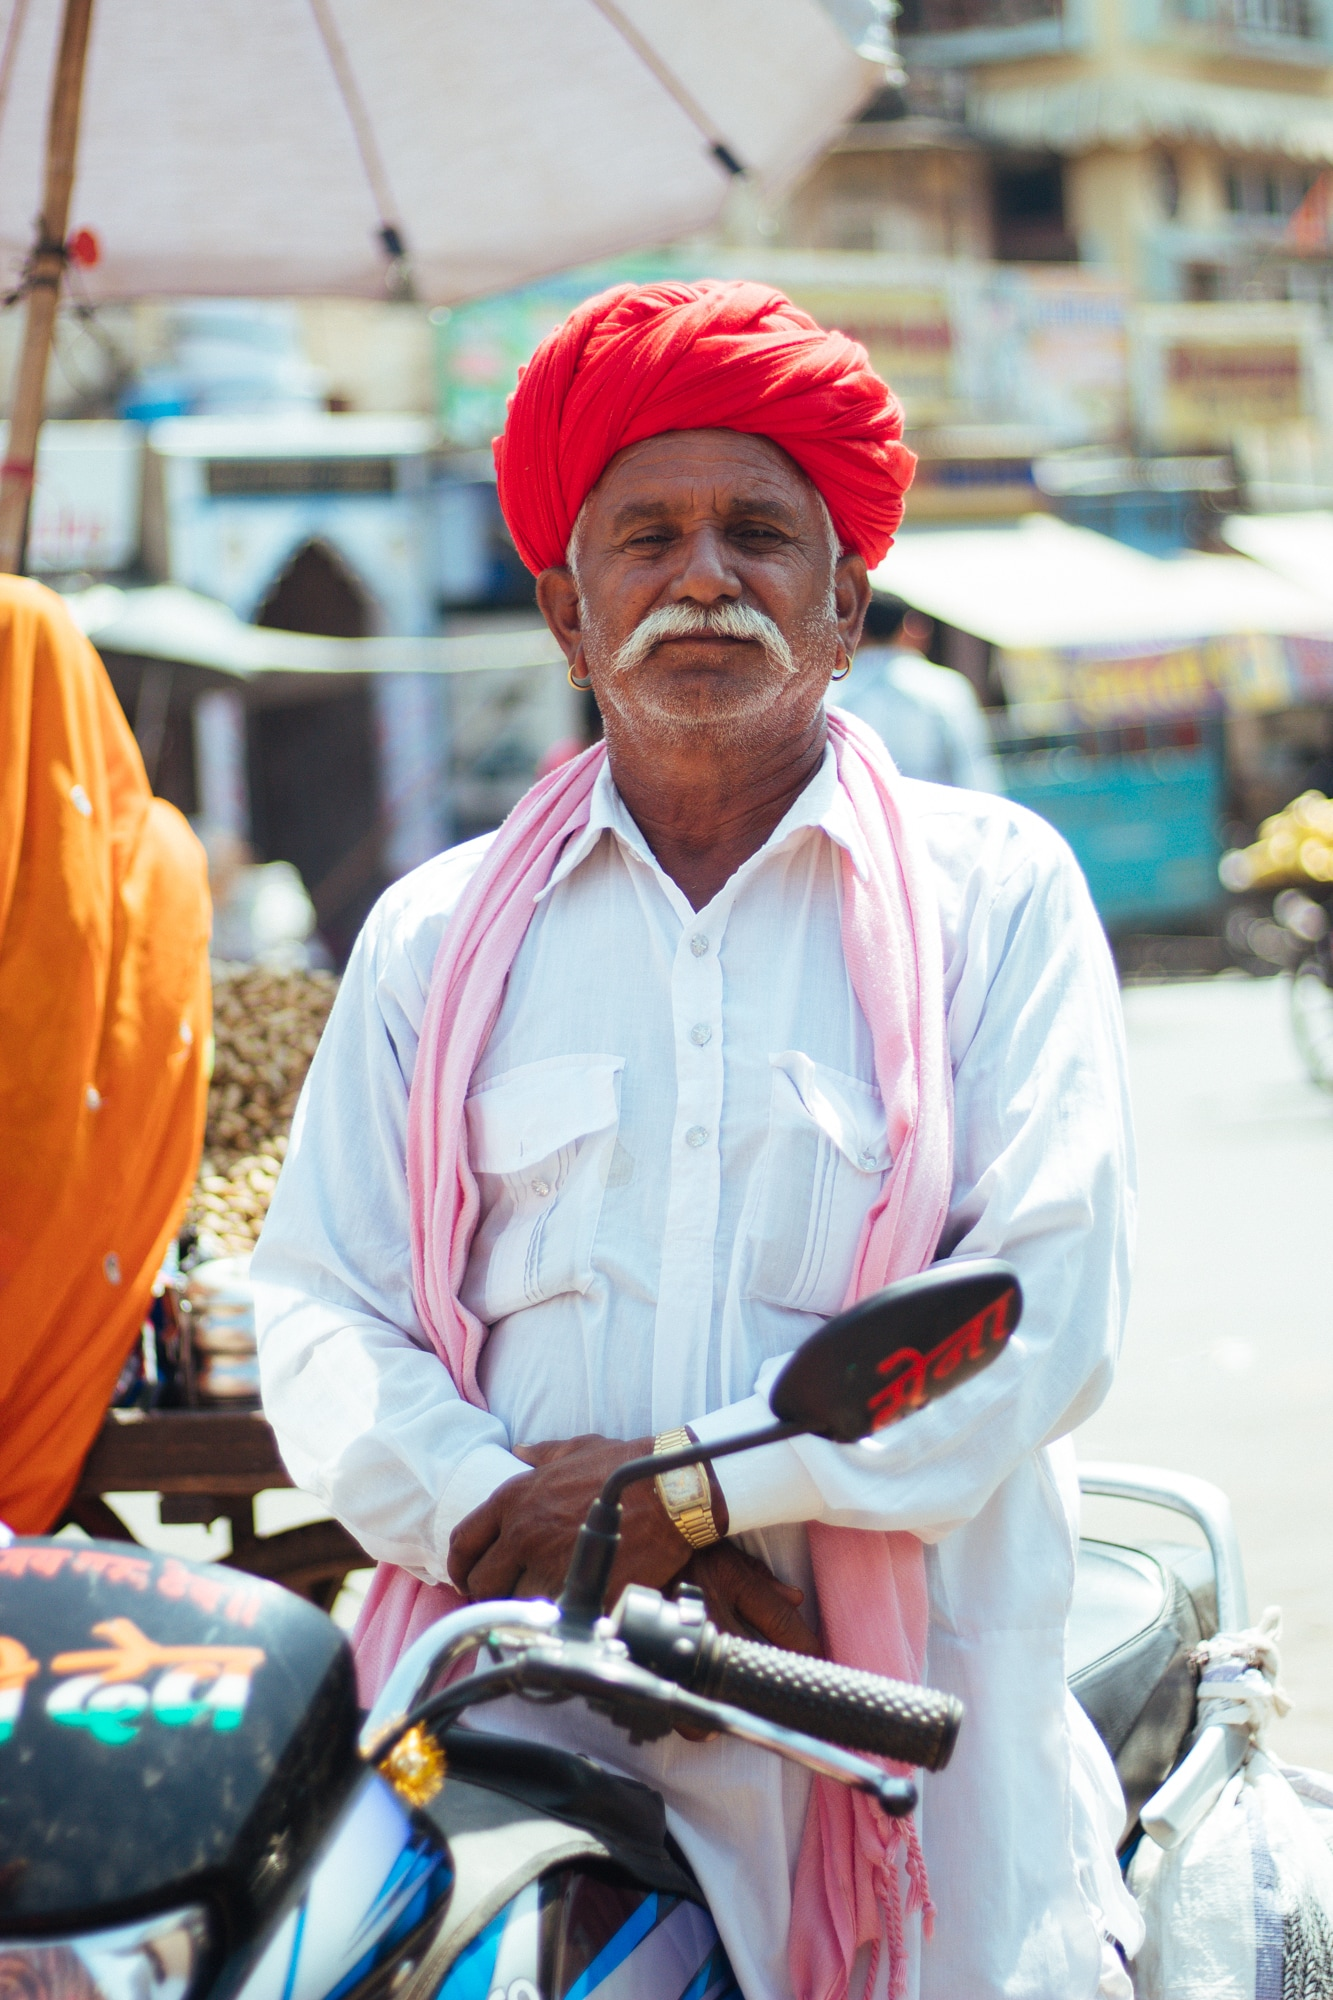 A Rajasthani man stops to pose for a quick picture.